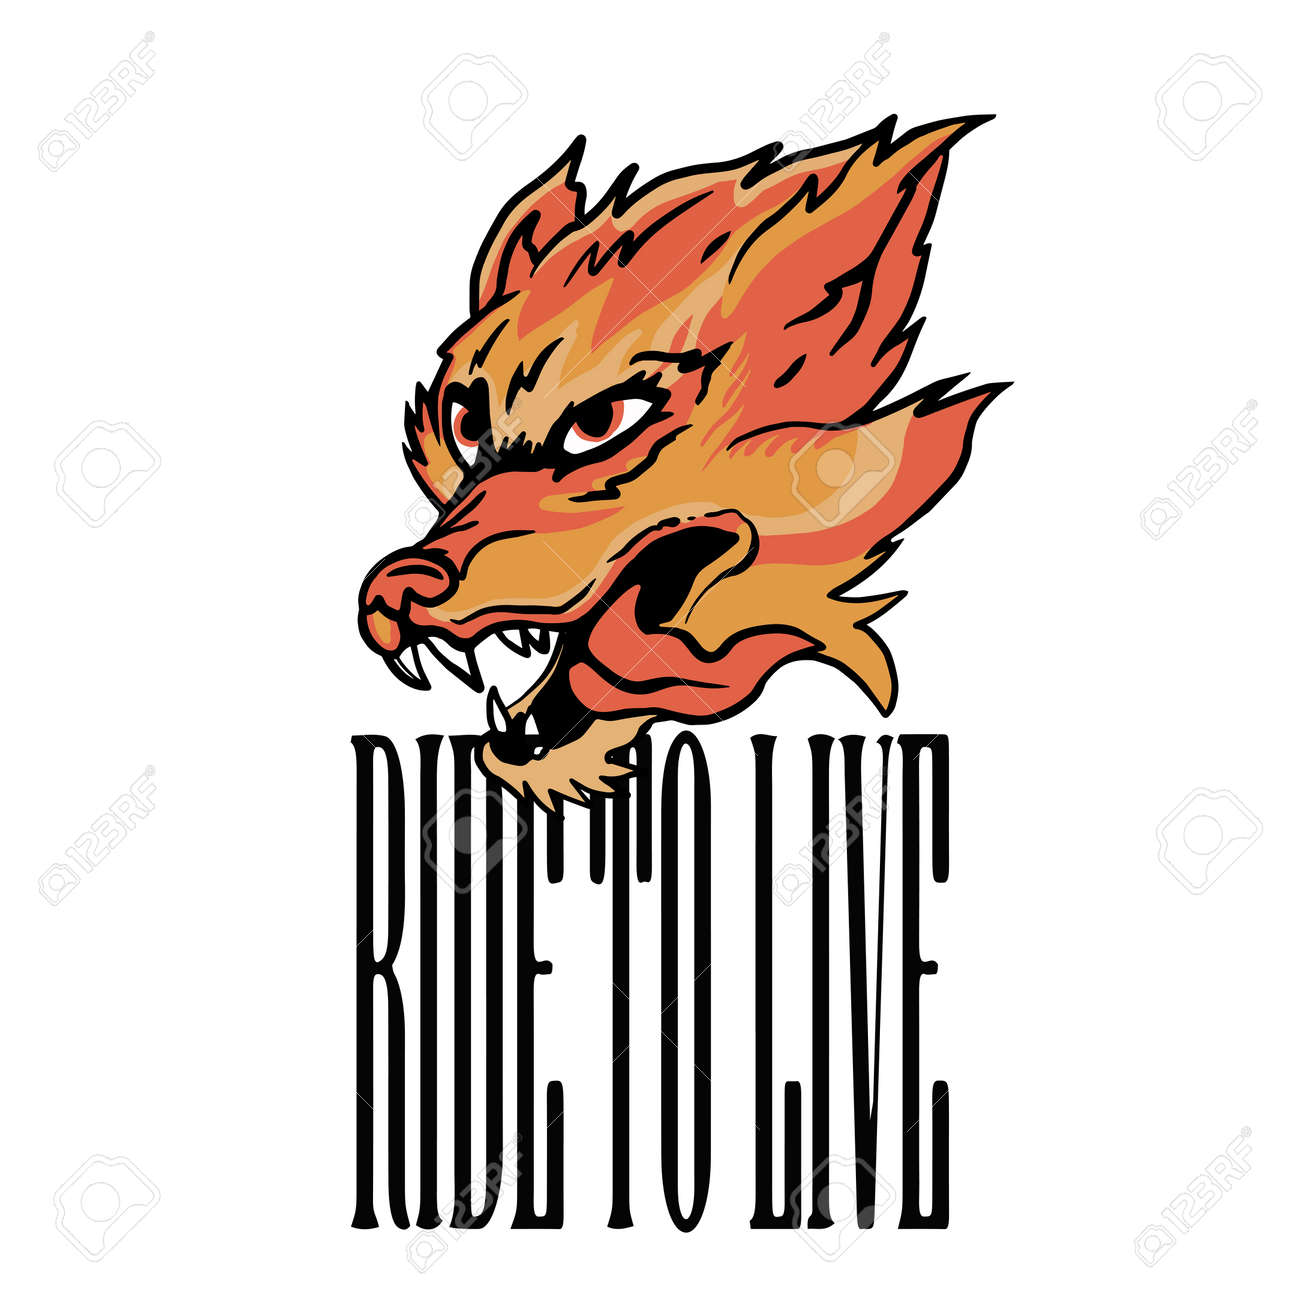 animal Head with Flames Illustration And ride to live slogan Vector Artwork for Apparel and Other Uses - 154725351